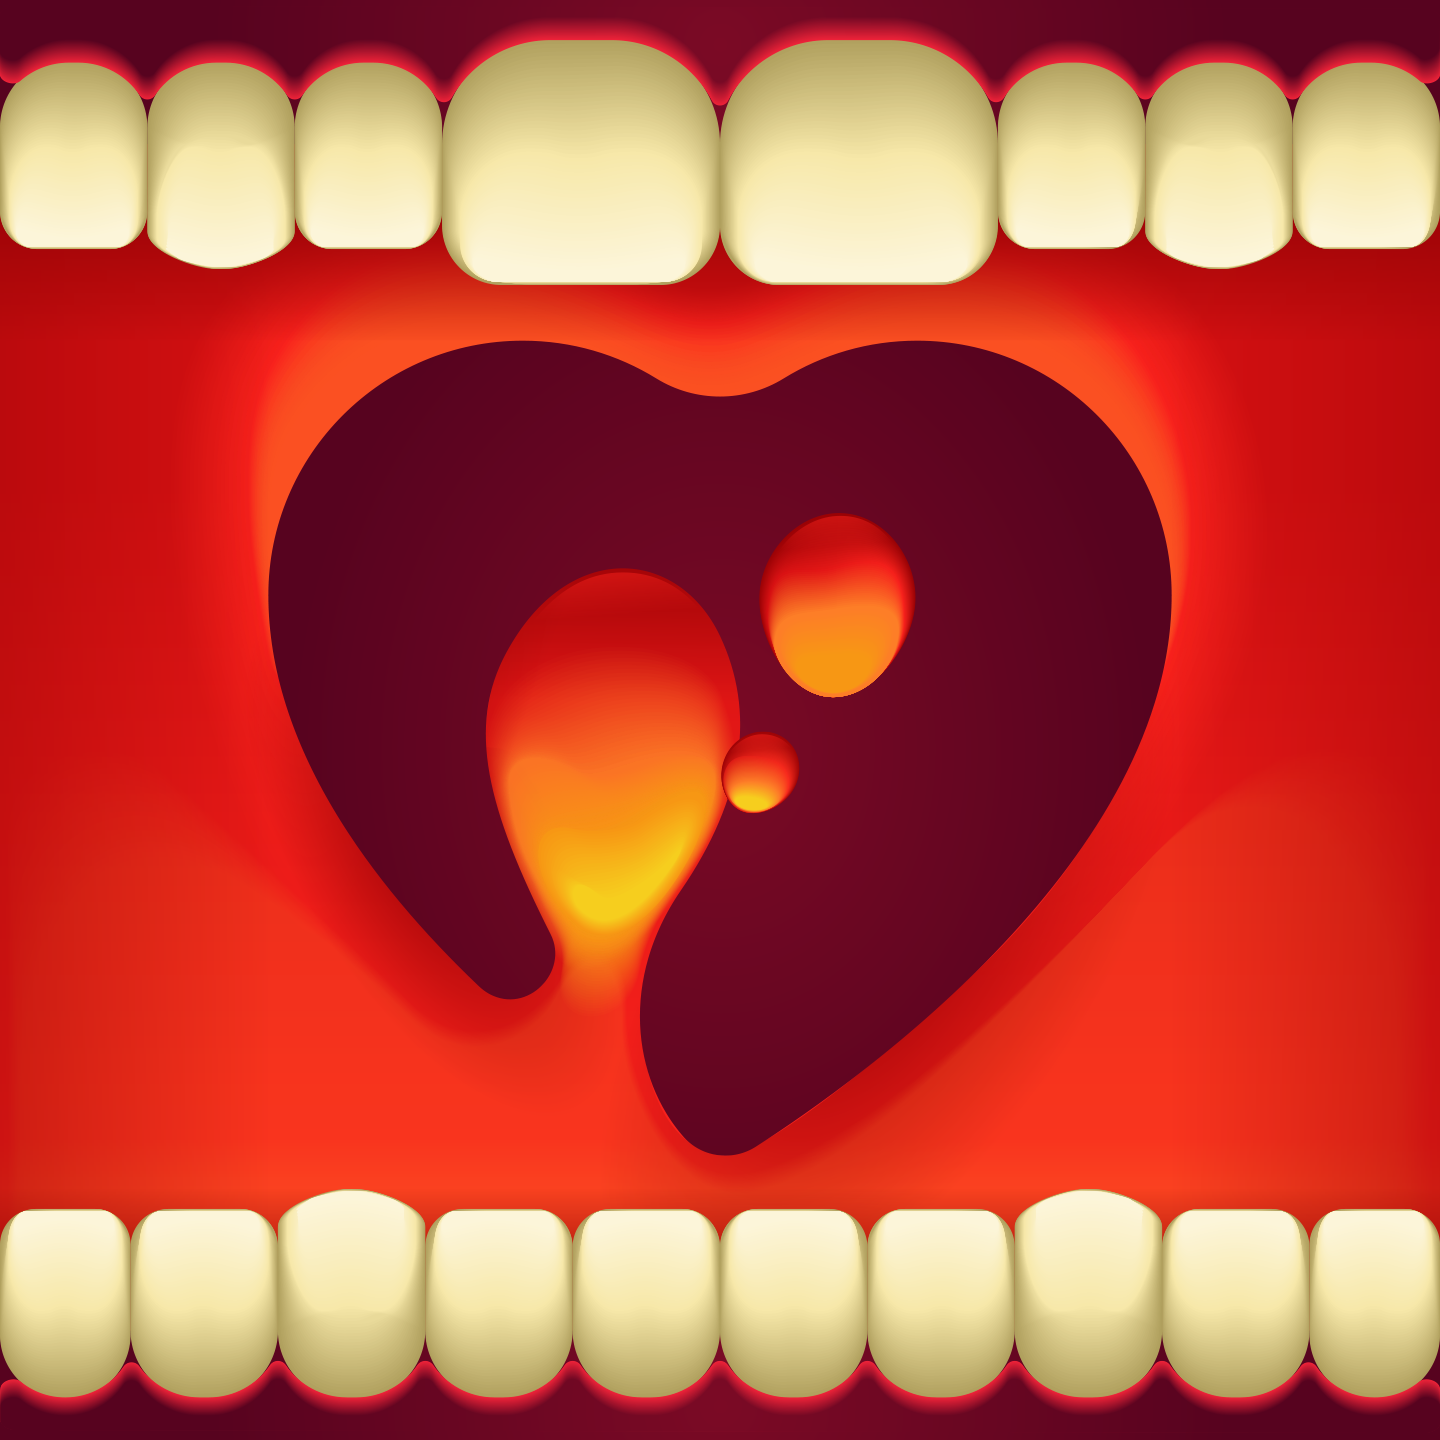 material_iconic_illustration_andre_levy_zhion_teeth_lava_lamp_scream_love_surreap_pop.png